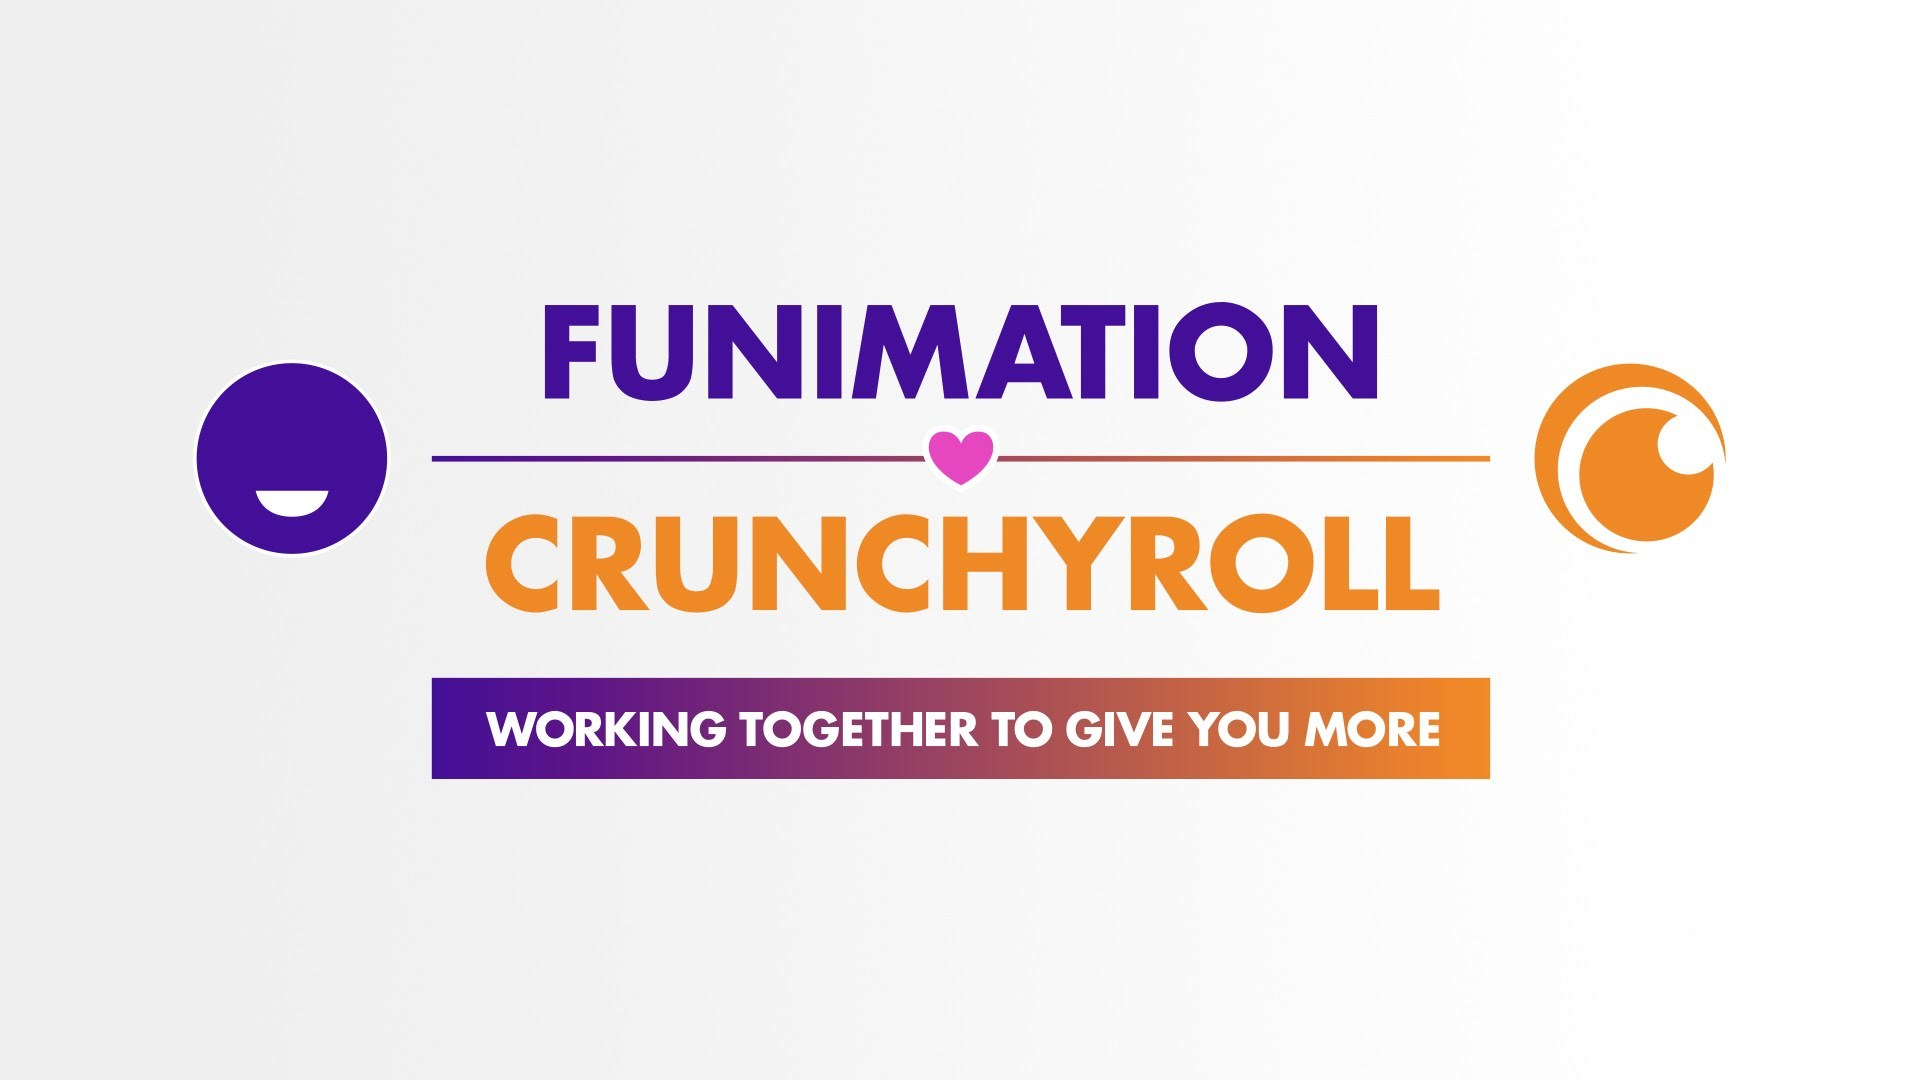 Funimation de Sony adquiere Crunchyroll - The Couch